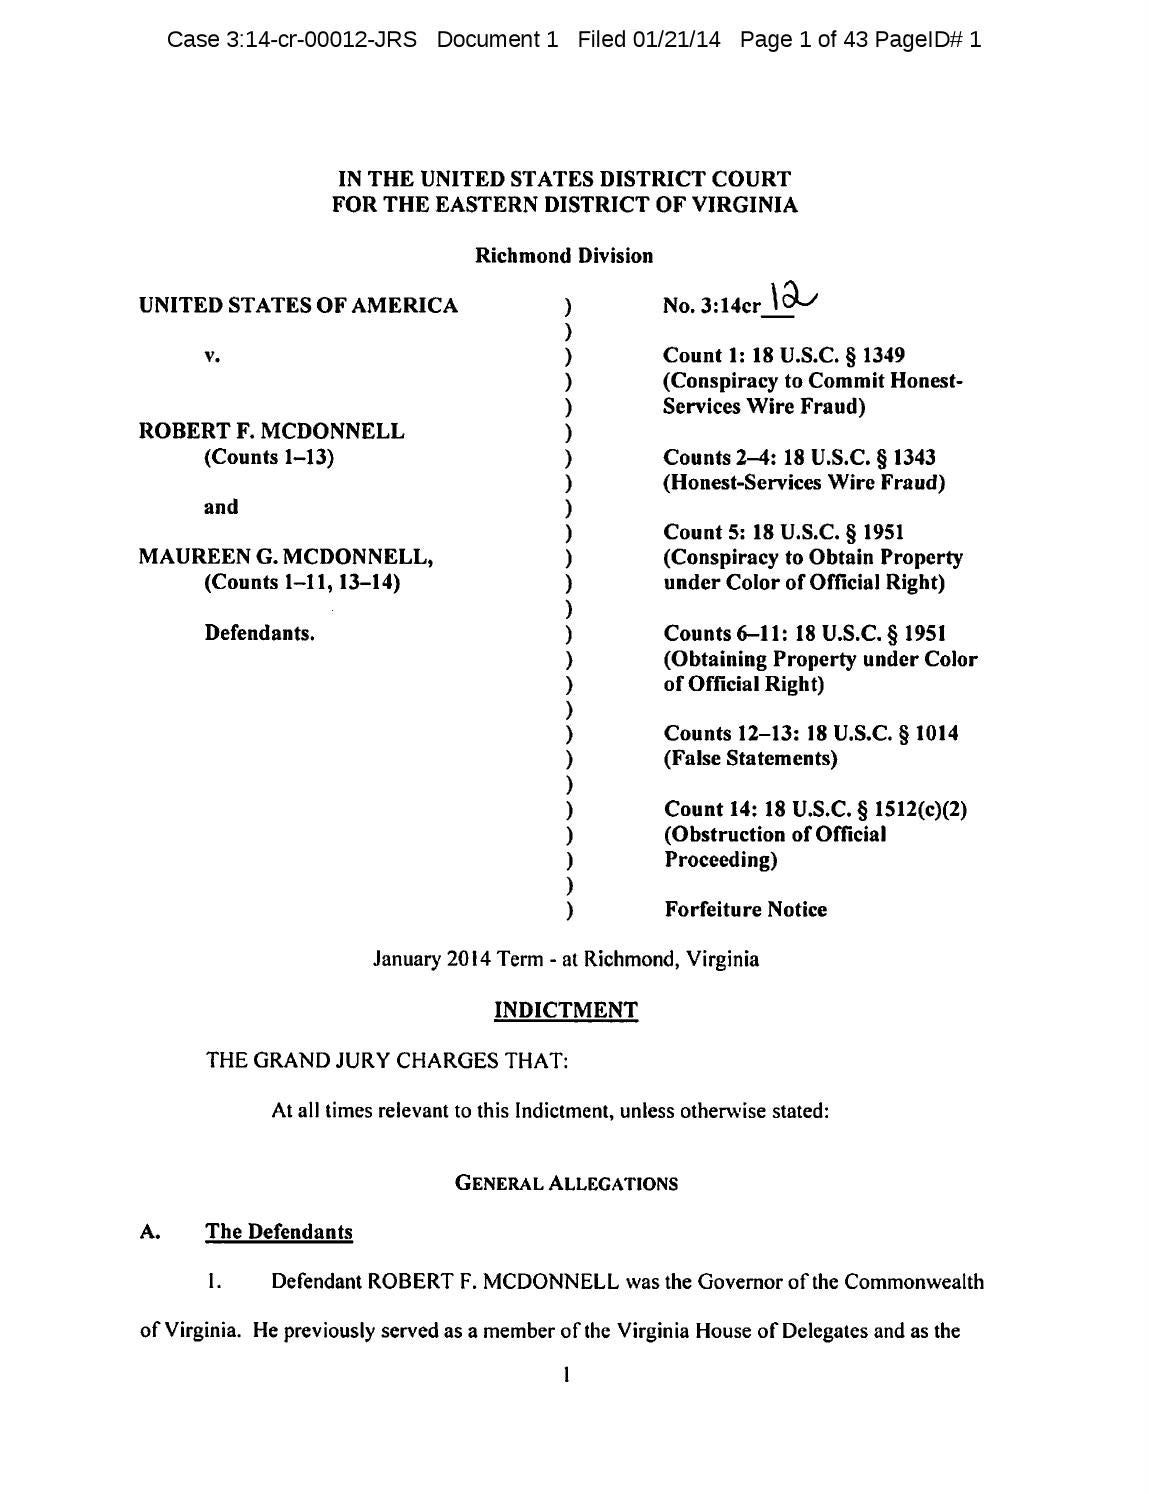 forfeiture notice template - mcdonnell indictment by virginia business issuu